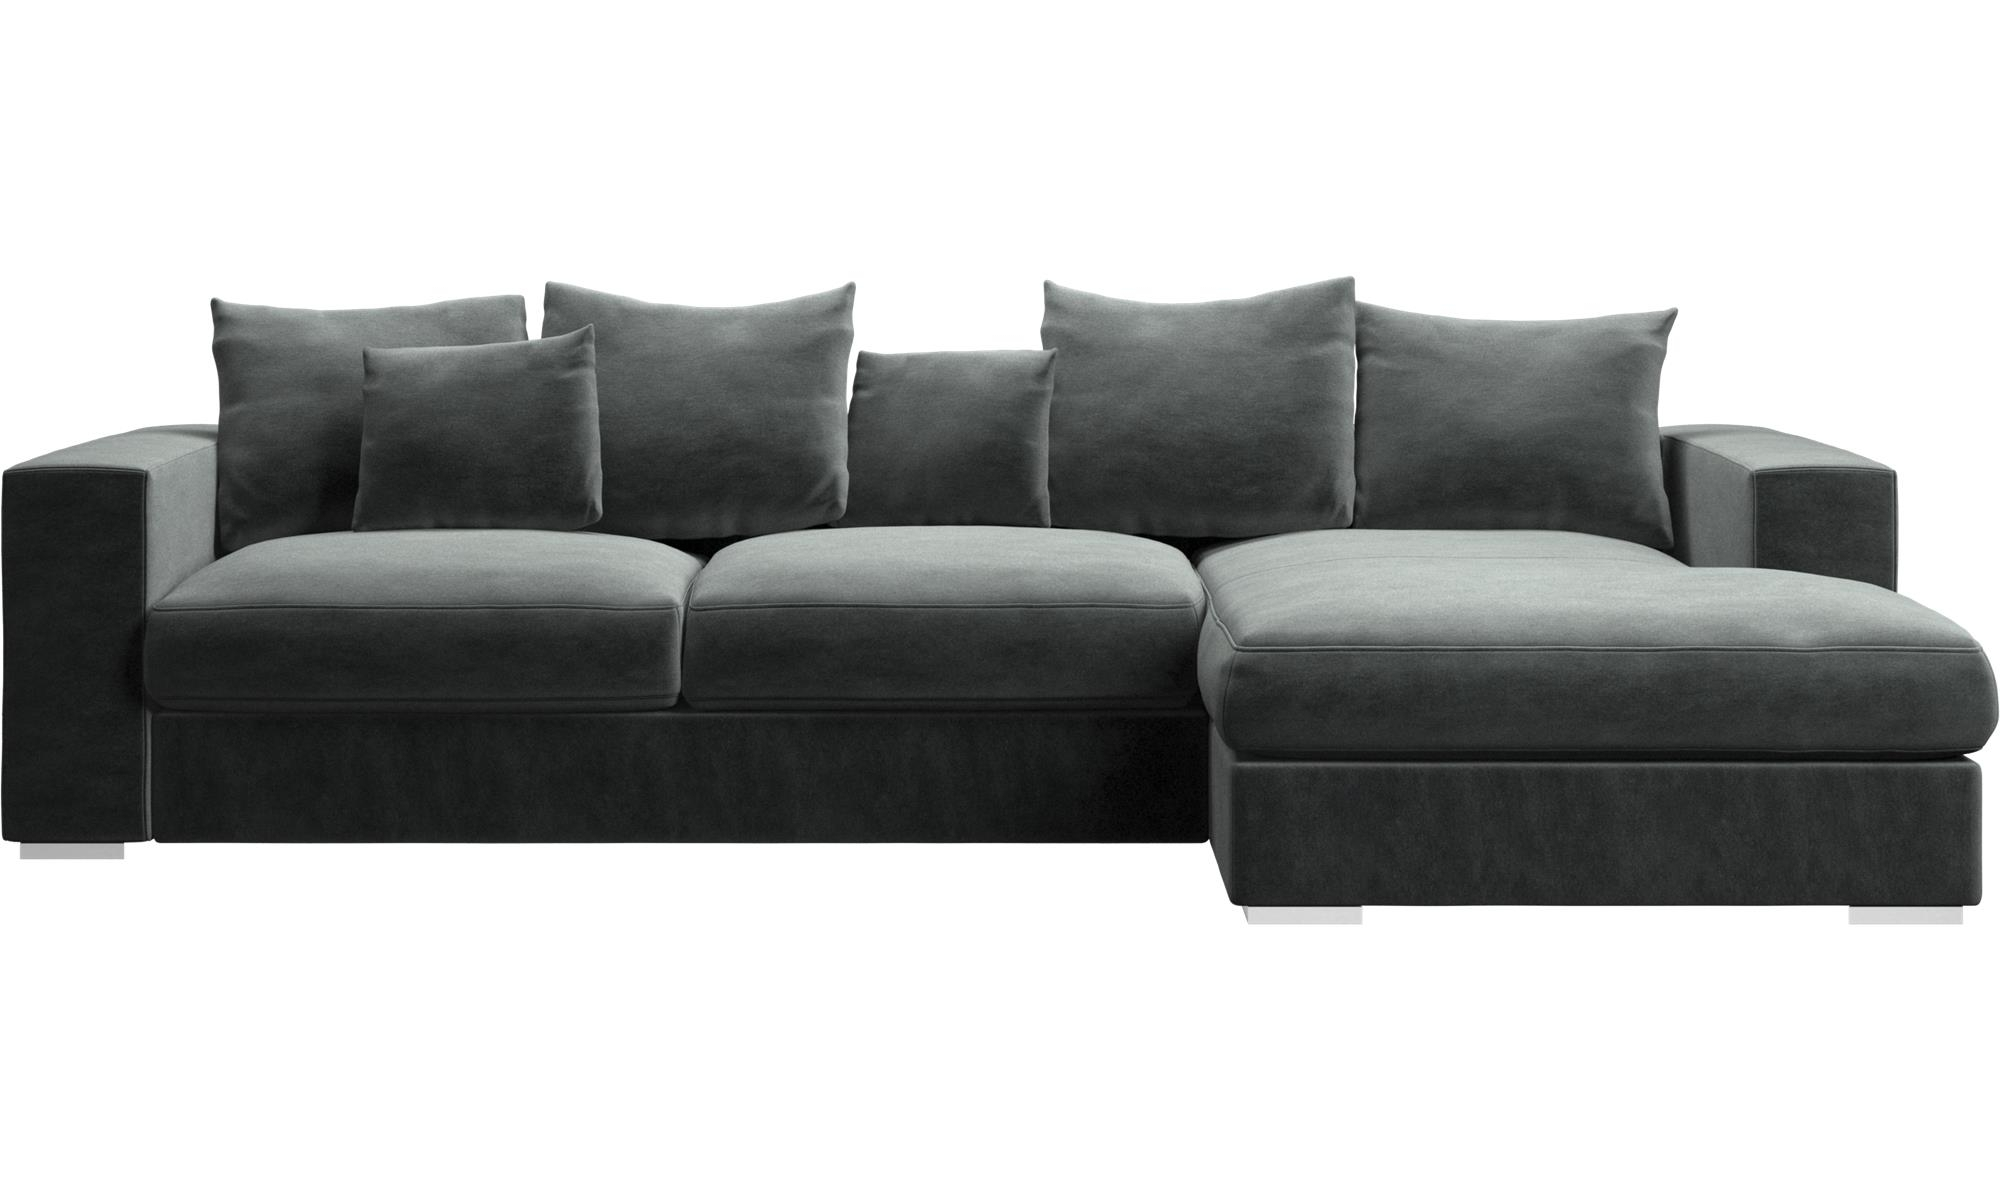 Favorite Sofas With Chaise Lounge Intended For Chaise Lounge Sofas – Cenova Sofa With Resting Unit – Boconcept (View 6 of 15)